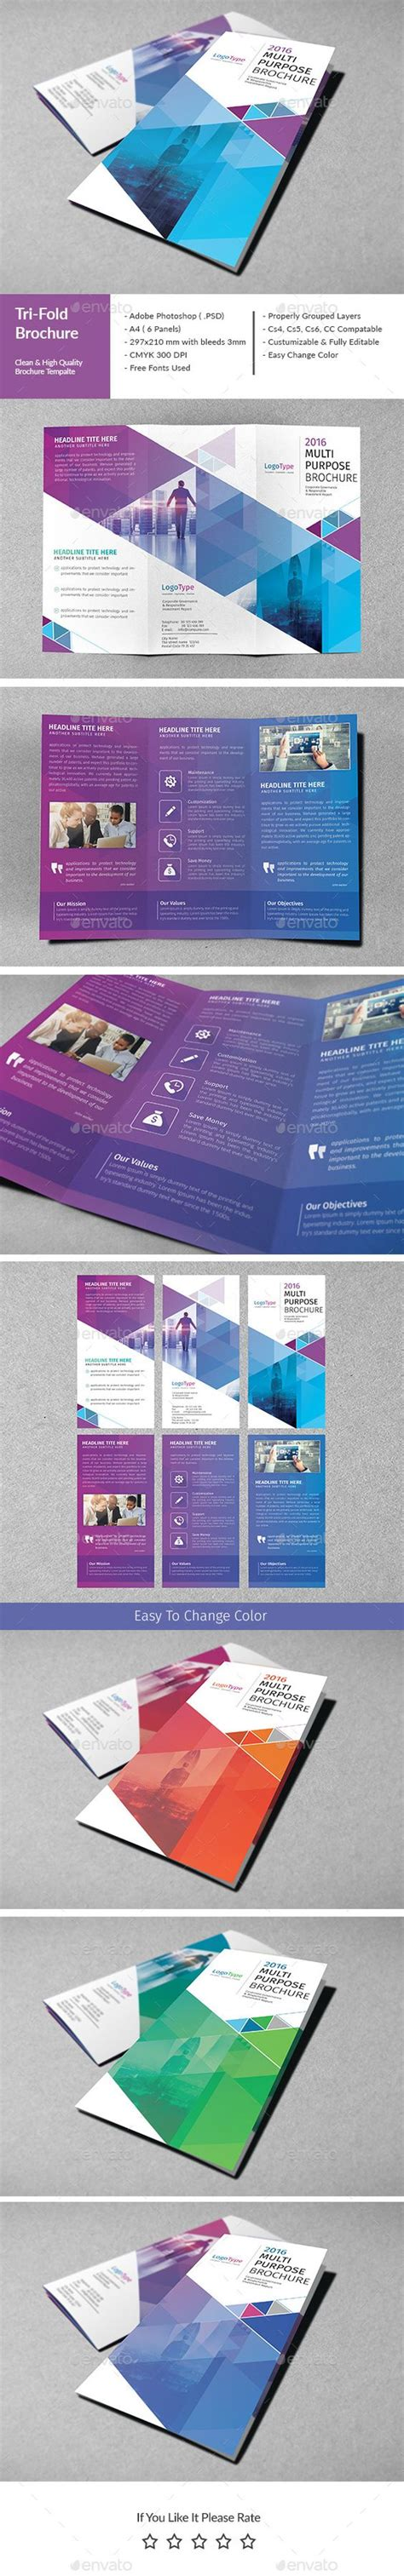 cool brochure templates be cool graphics and brochures on